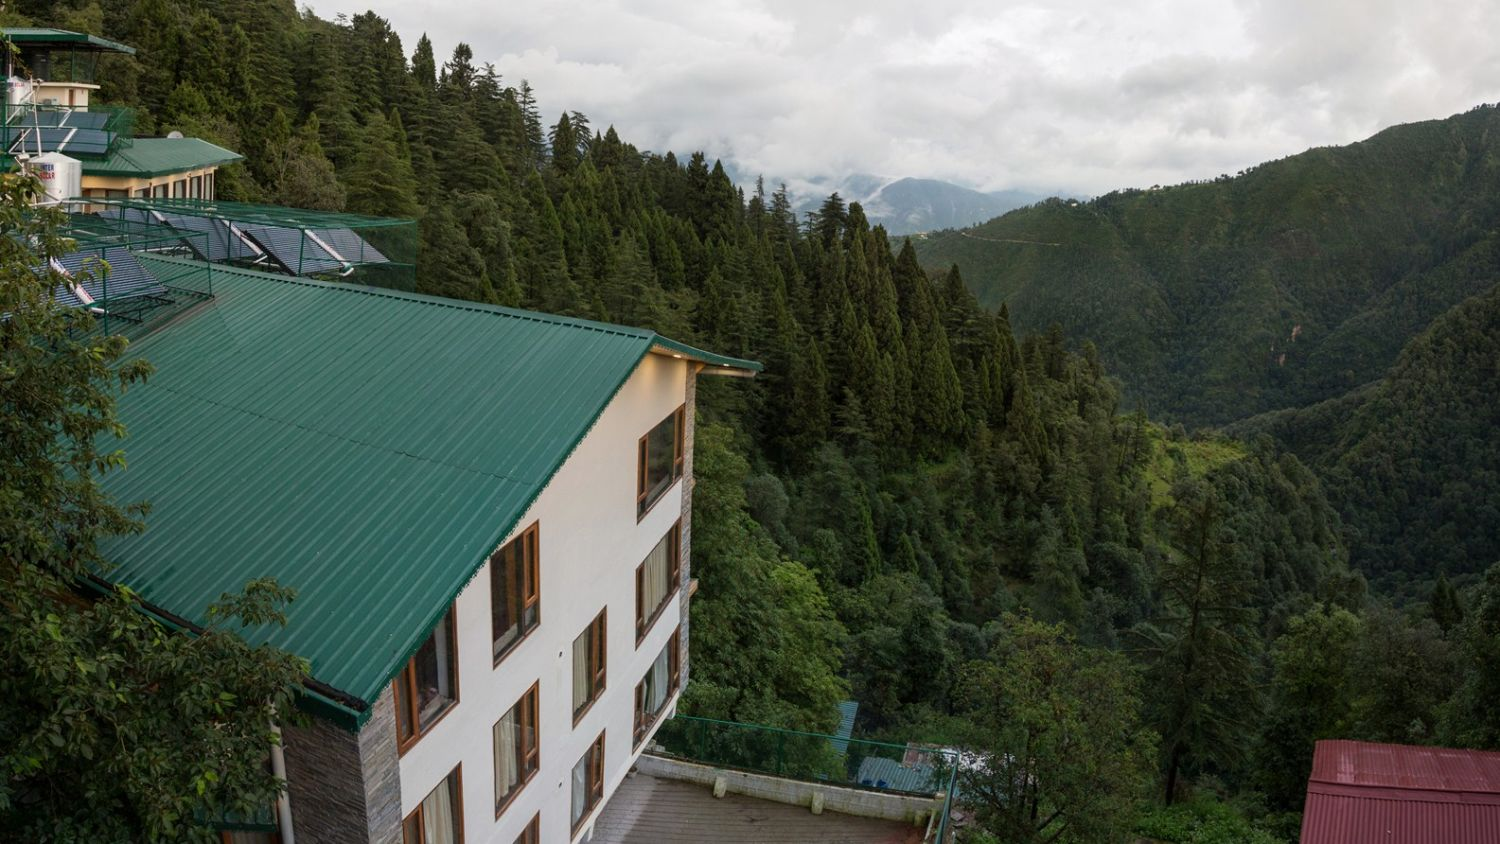 best hotels in Mussoorie on Mall road, Hotel near Mossy Falls, Hotel Pacific Mussoorie